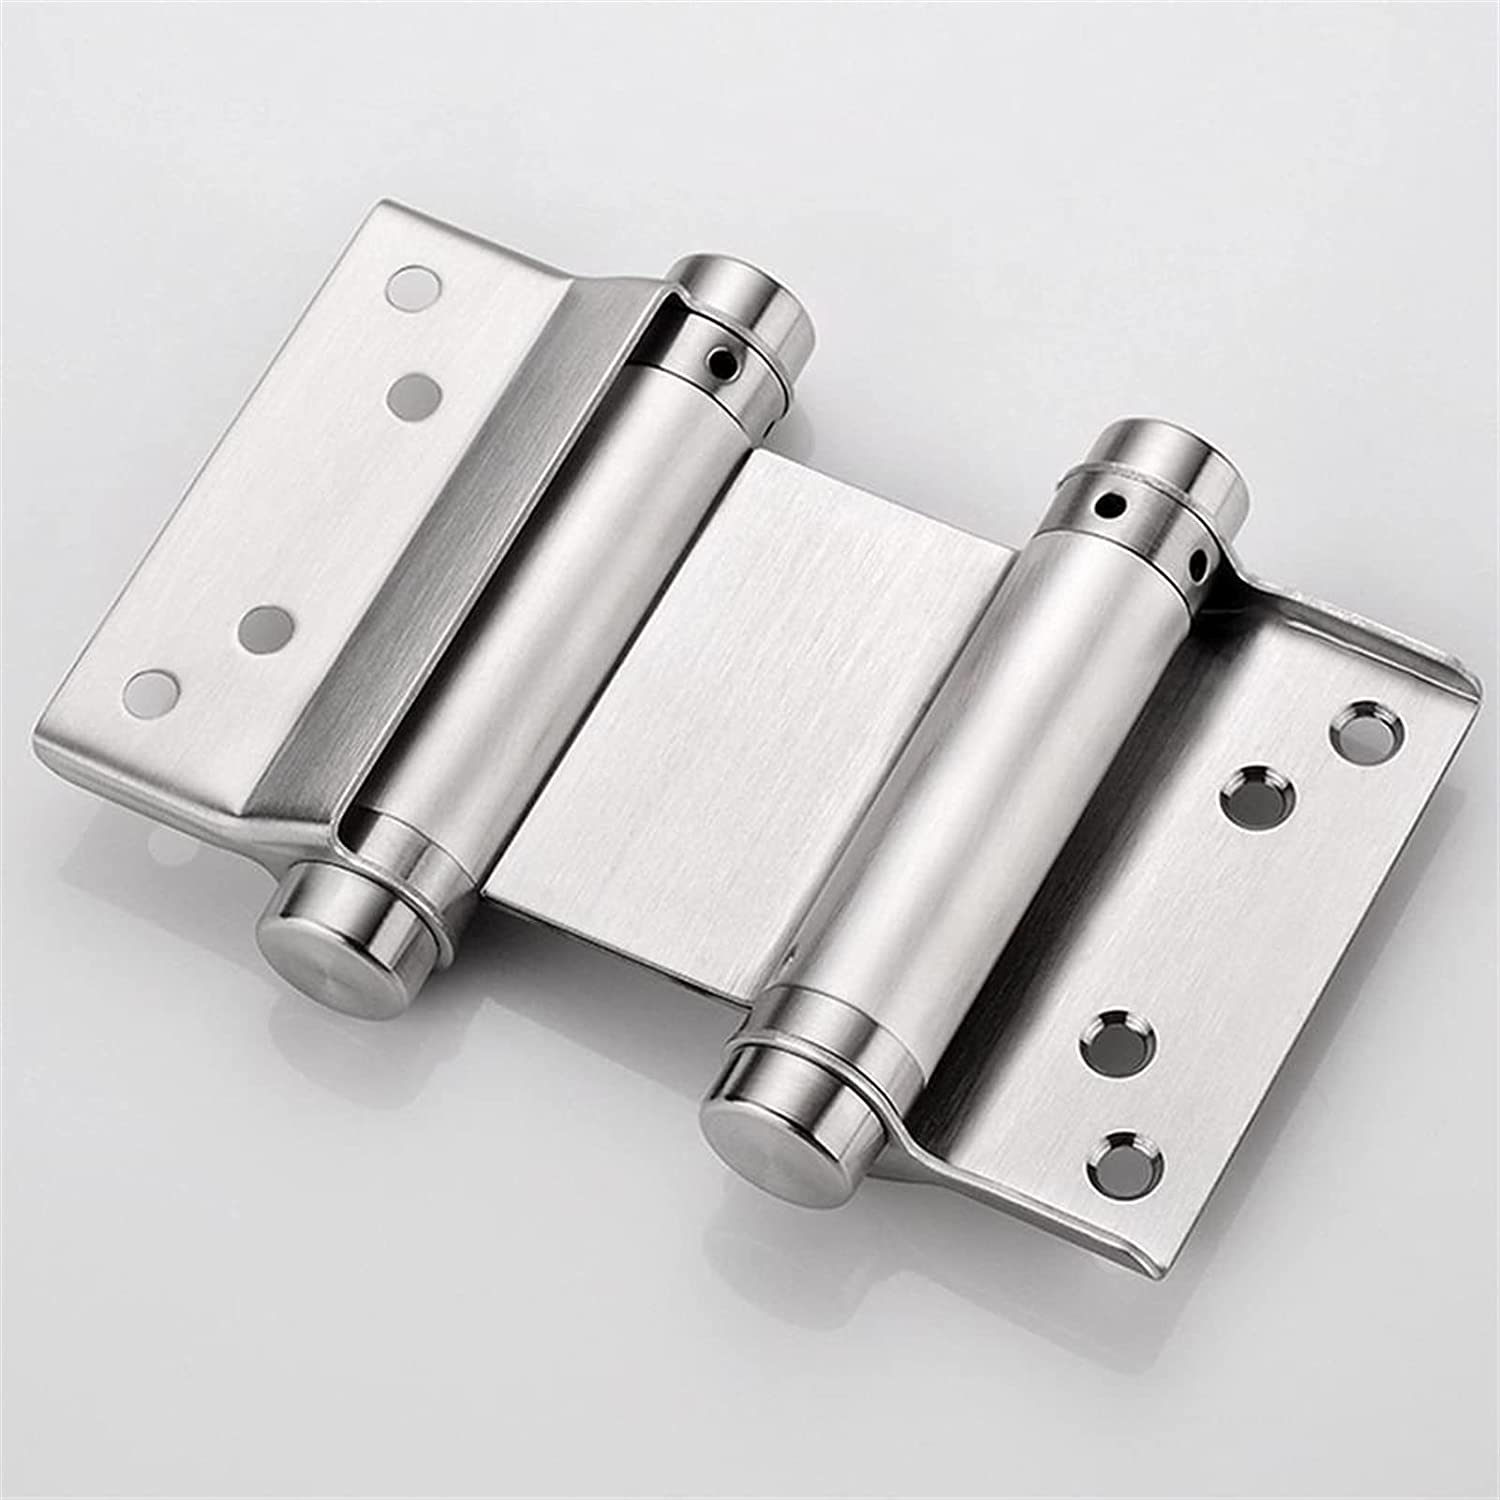 VEIGOU Sturdy Free Door Stainless Two-Way Steel Max 49% OFF Inn San Diego Mall Spring Hinge